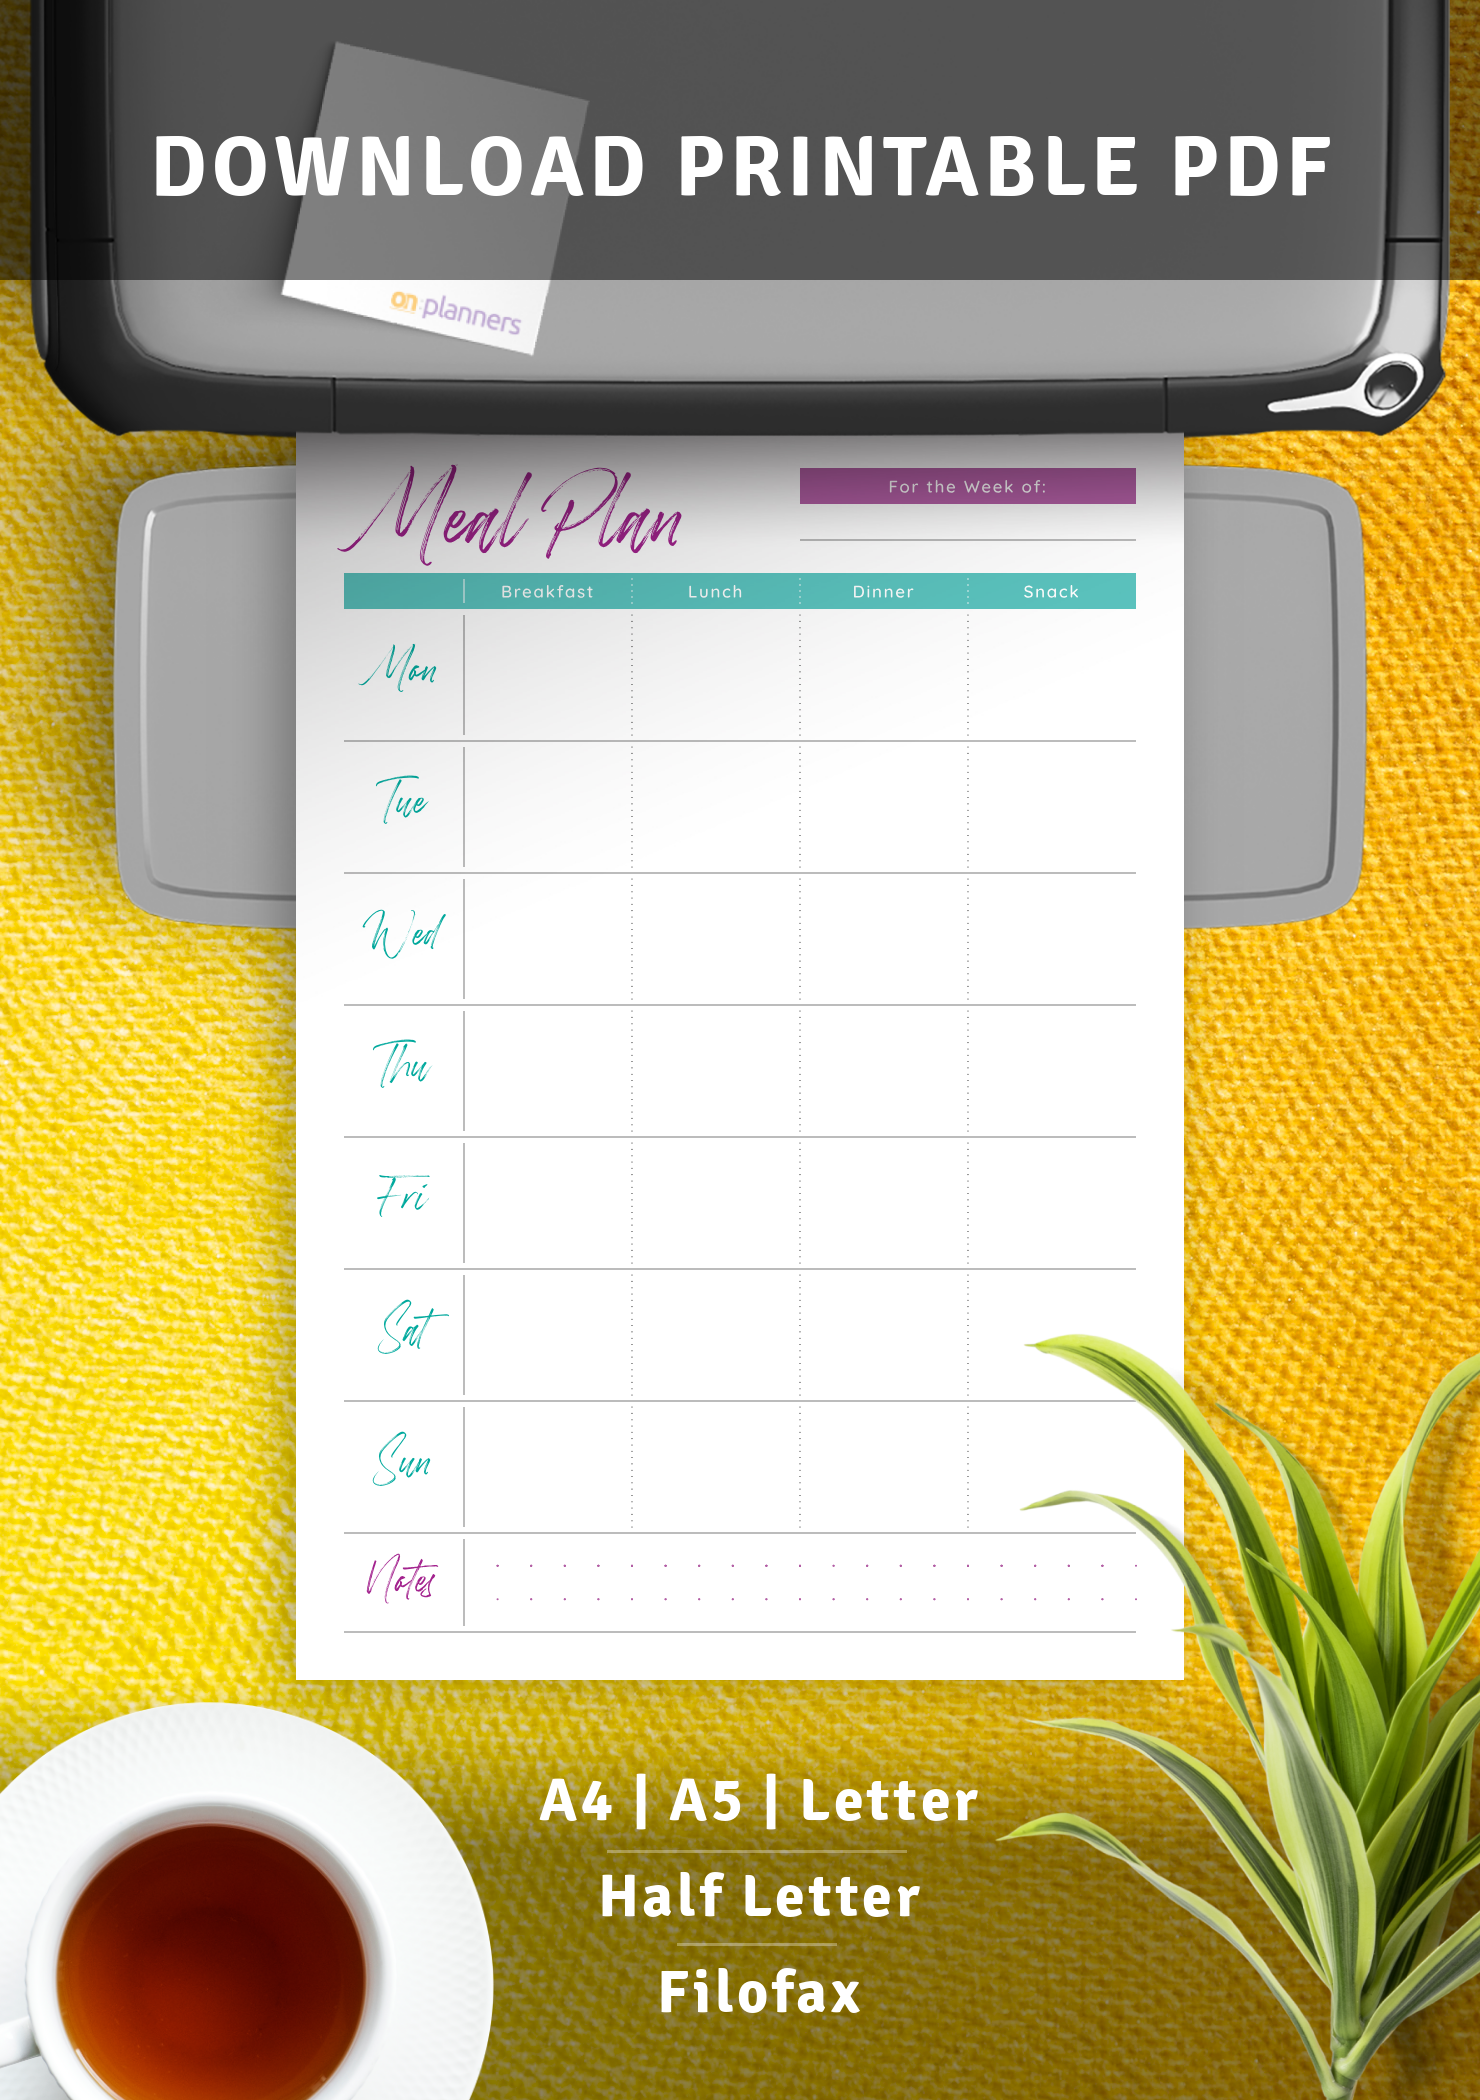 download printable meal plan for the week pdf